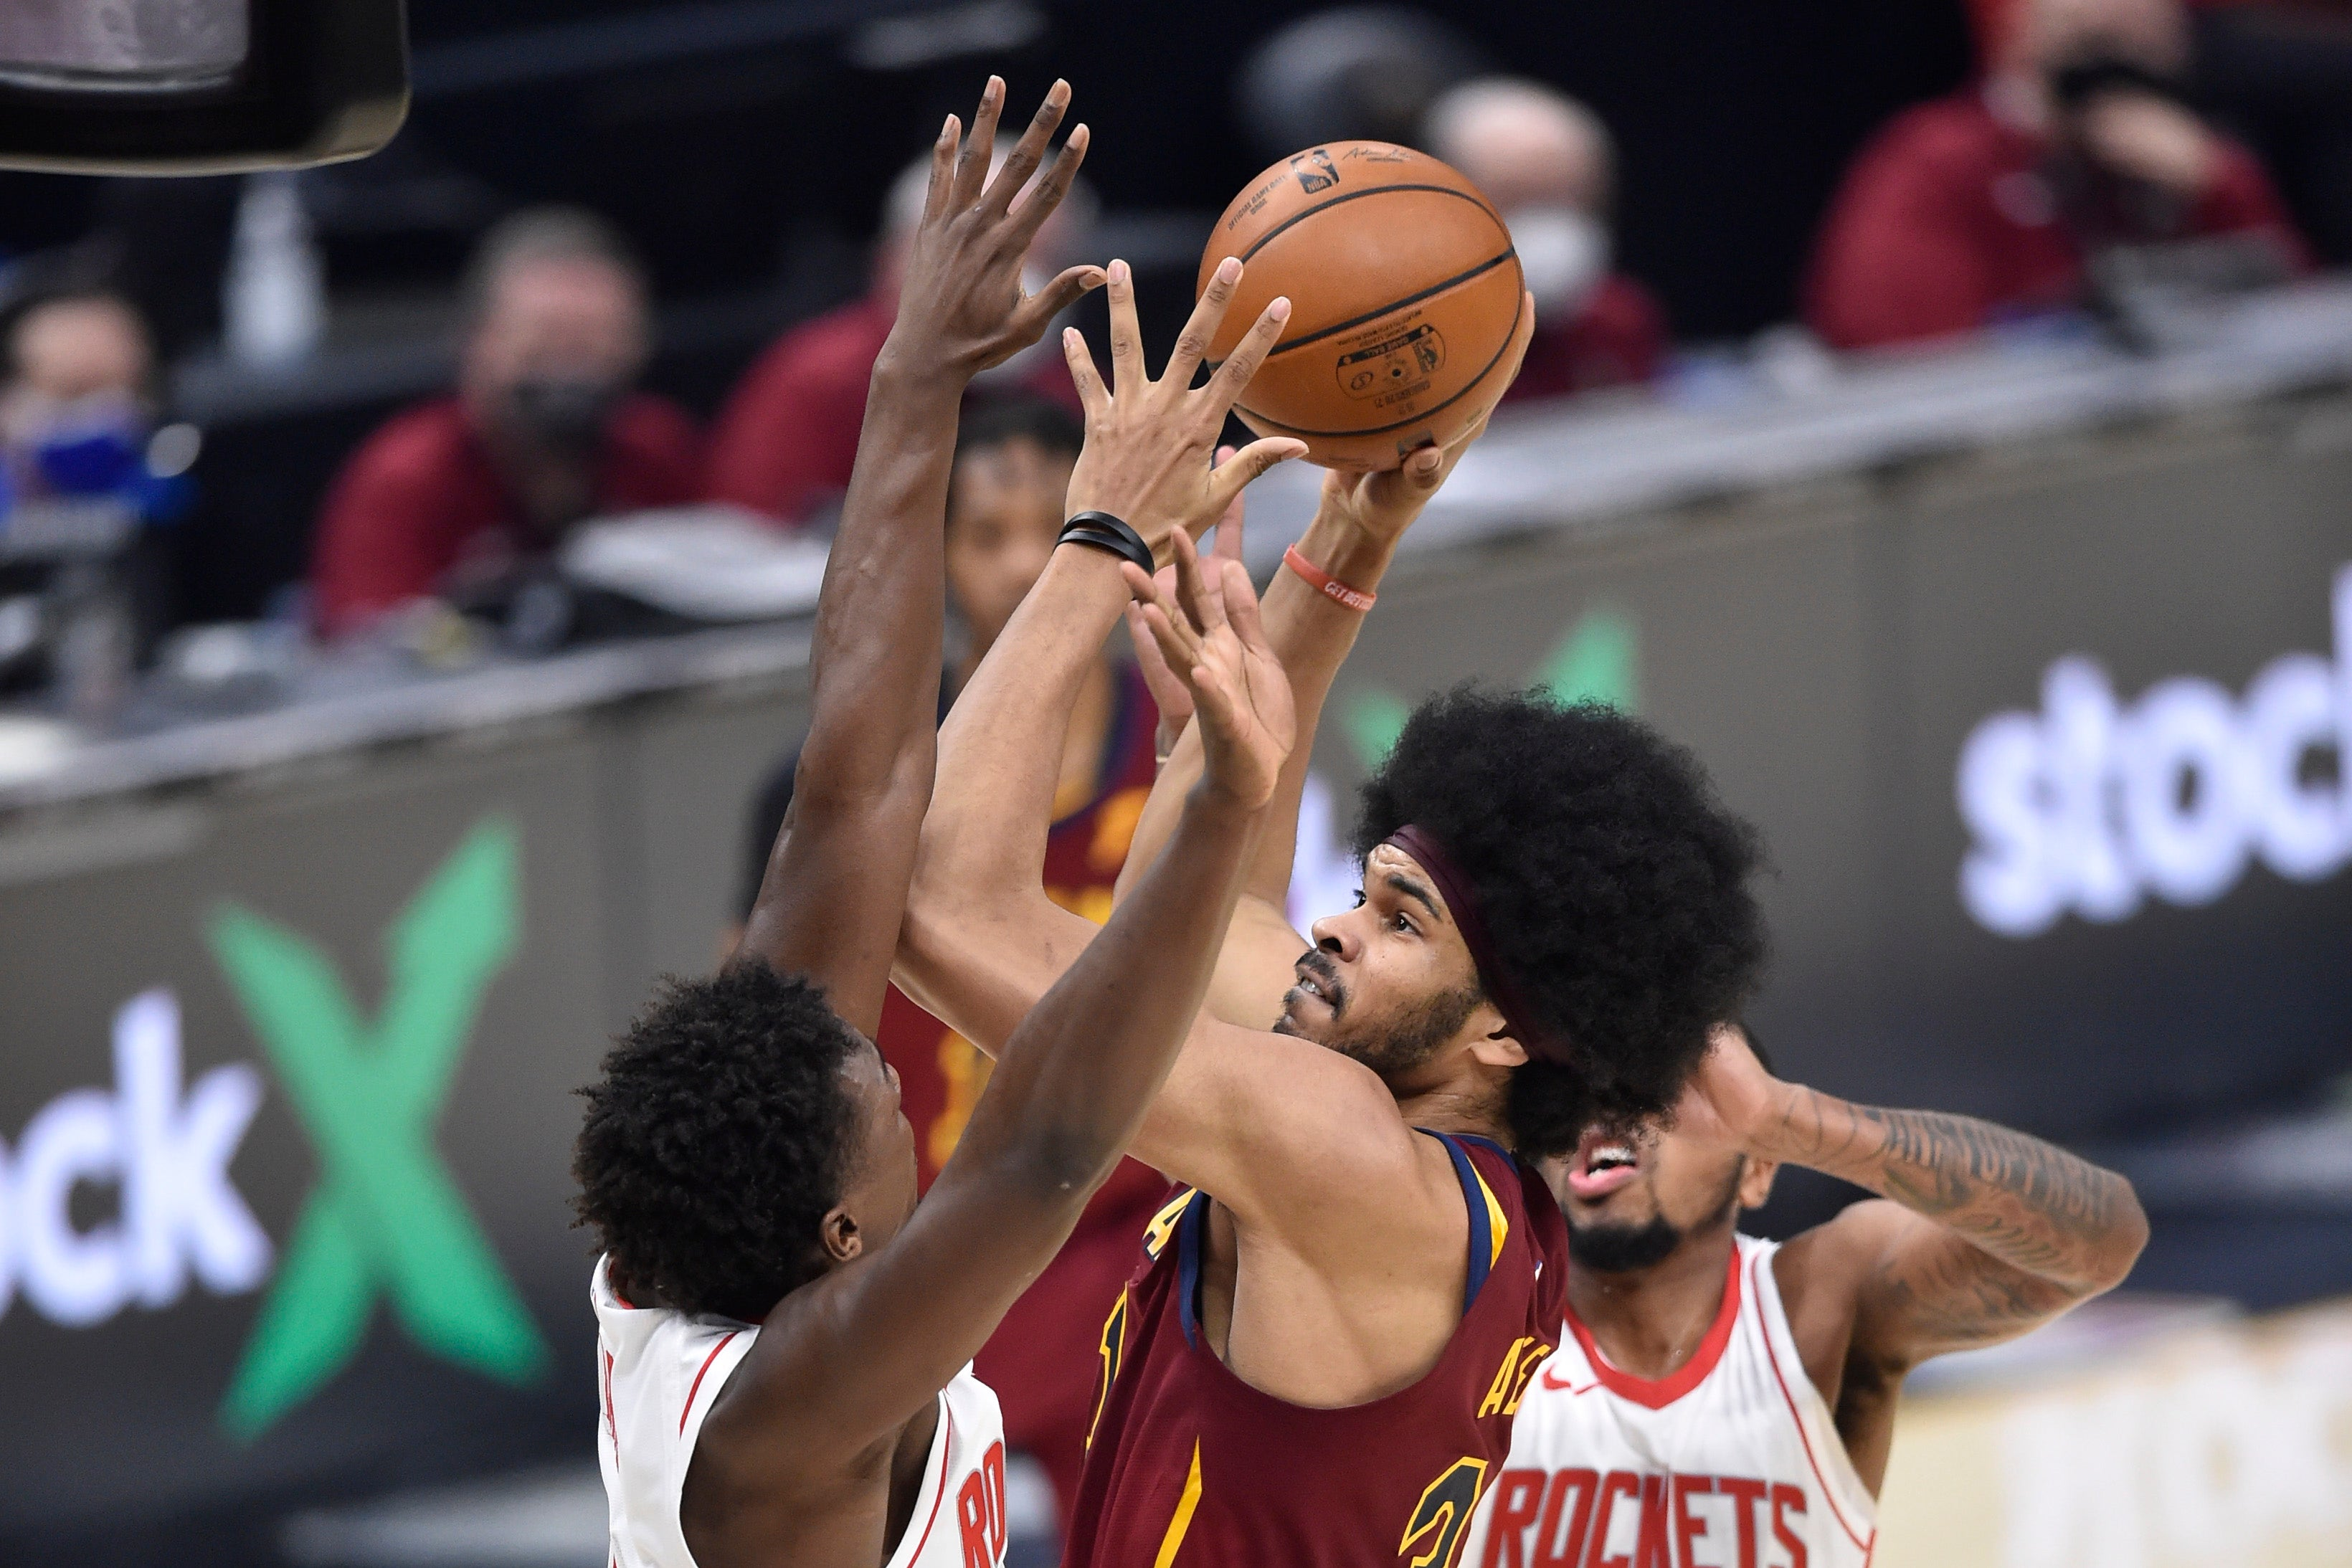 Allen ties career high with 26 points as Cavaliers roll over Rockets 112-96  | FOX Sports